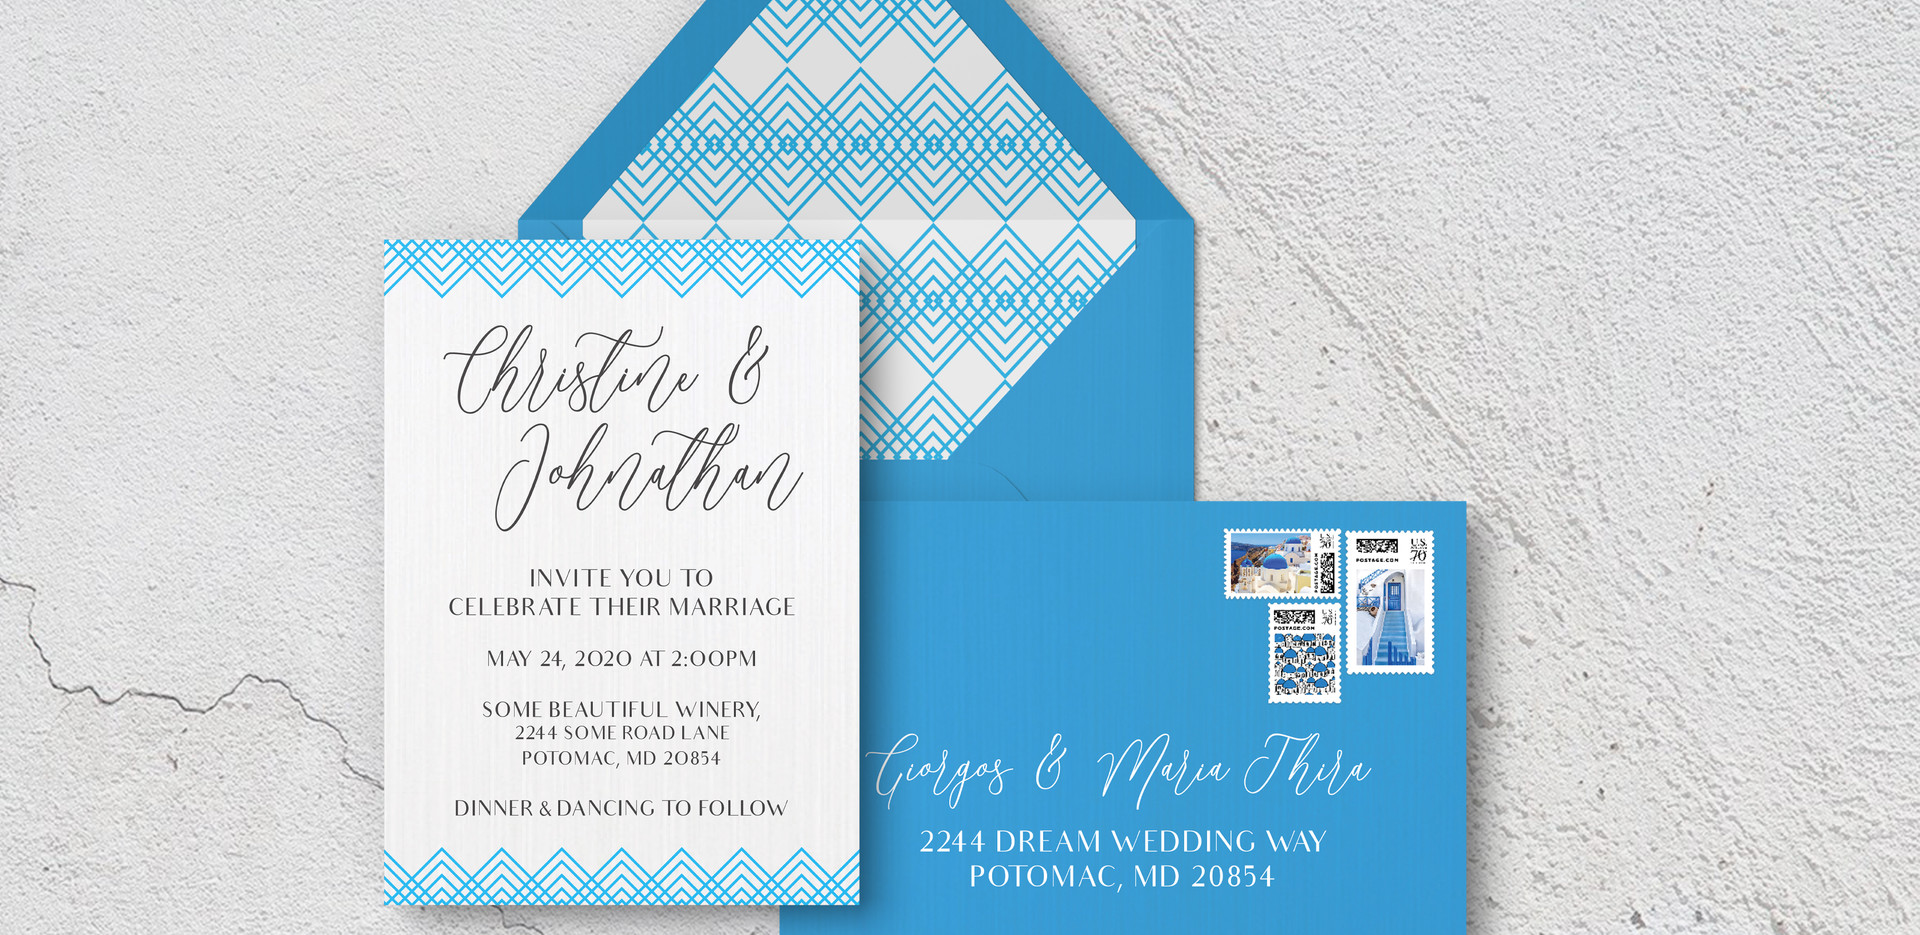 Invite + Envelopes